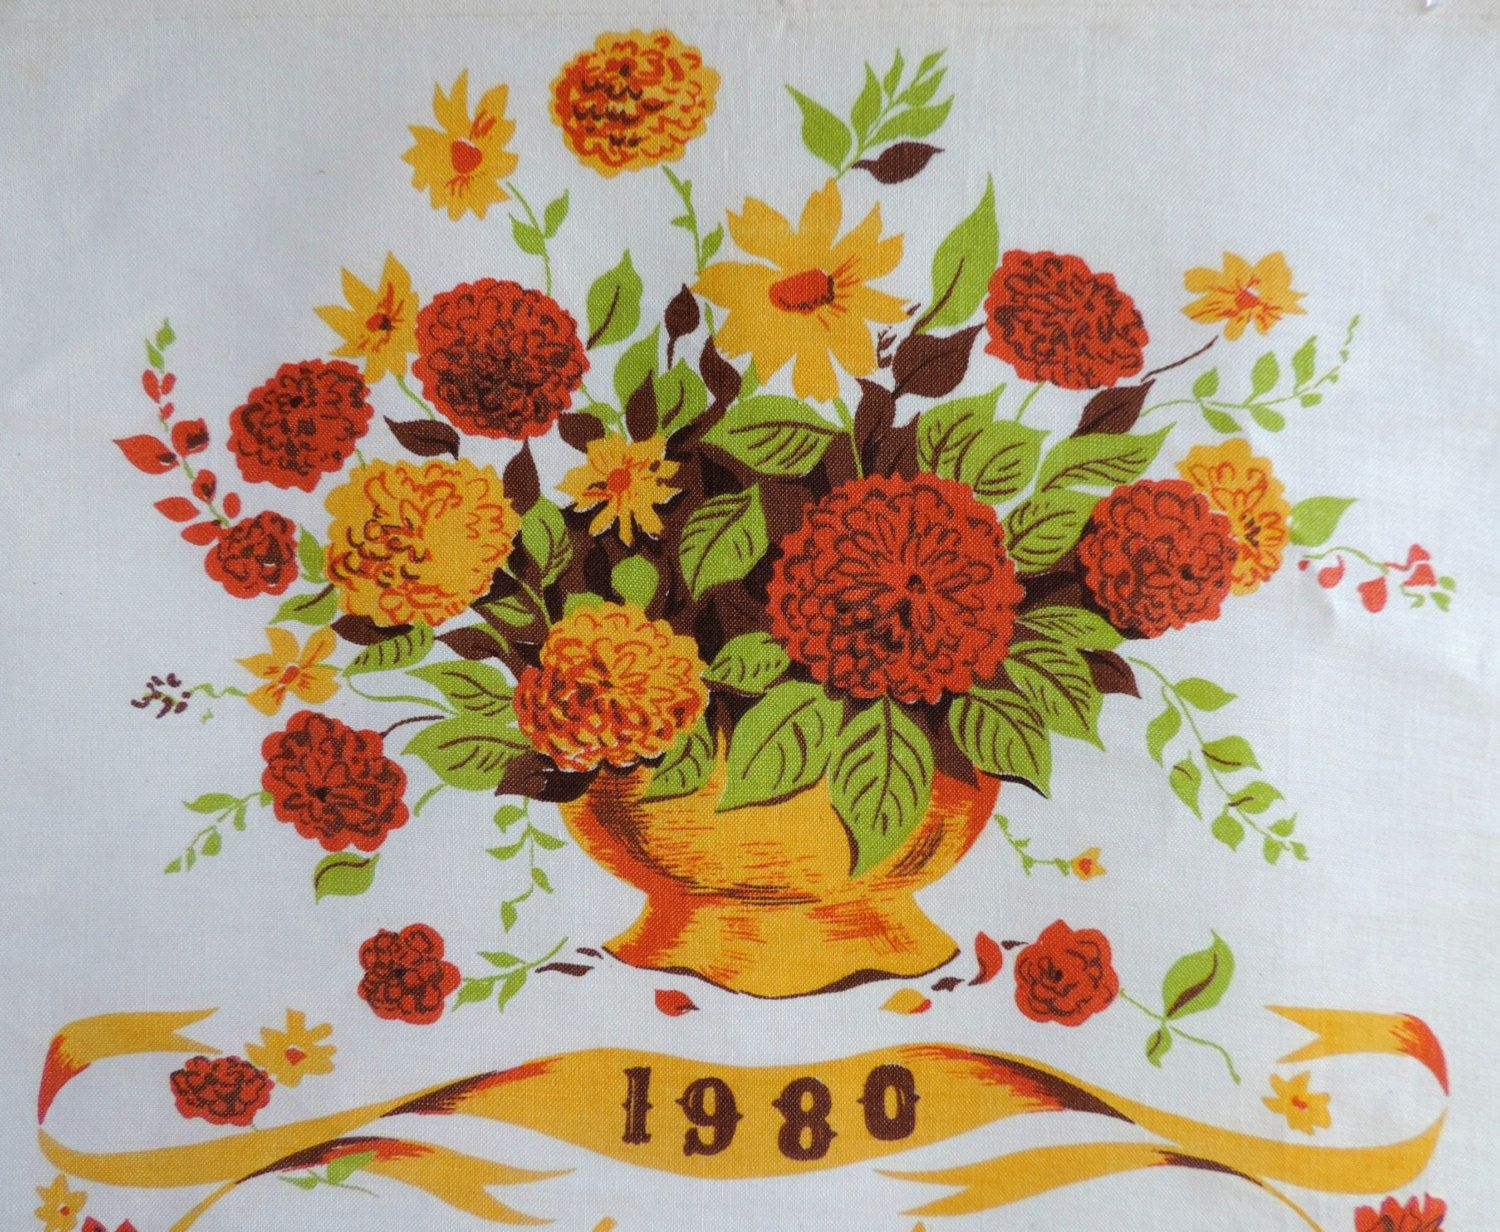 Vintage linen 1980 bd calendar tea towel flower bouquet retro vintage linen 1980 bd calendar tea towel flower bouquet retro wall hanging kitchen izmirmasajfo